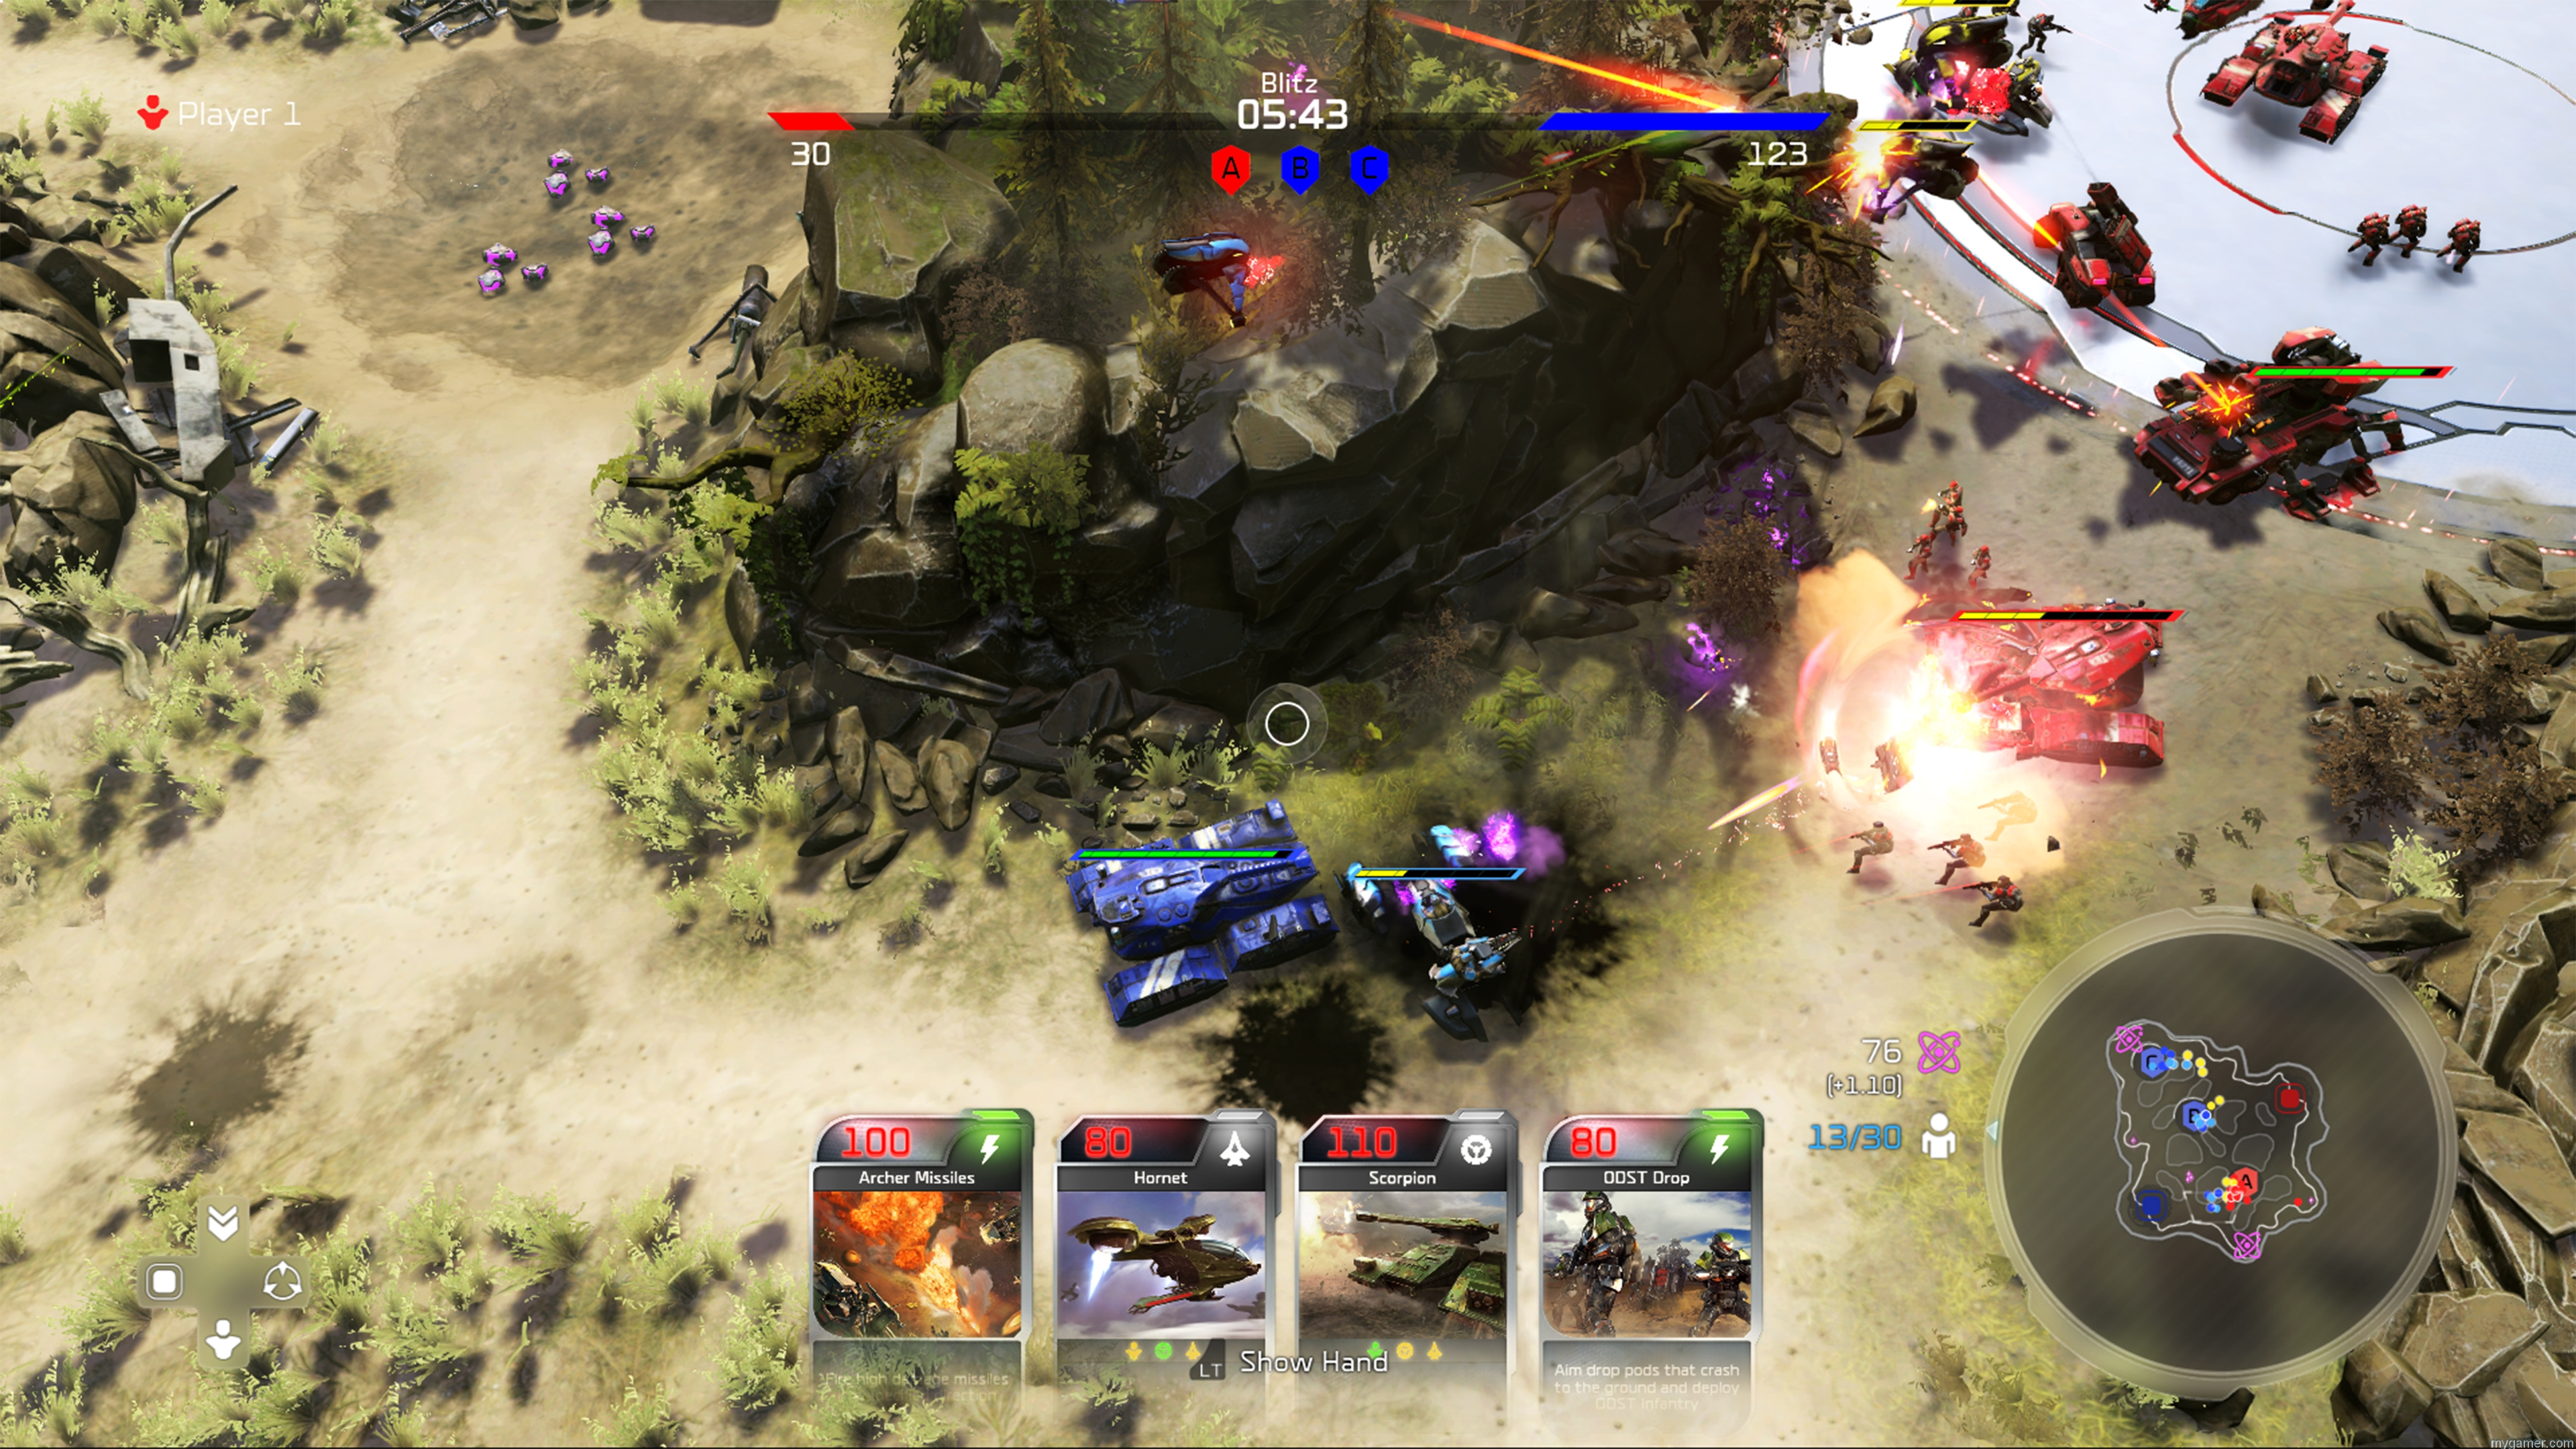 halo wars 2 features a new game mode called blitz Halo Wars 2 Preview Halo Wars 2 Preview hw2 blitz multiplayerpvp 01 100688286 orig